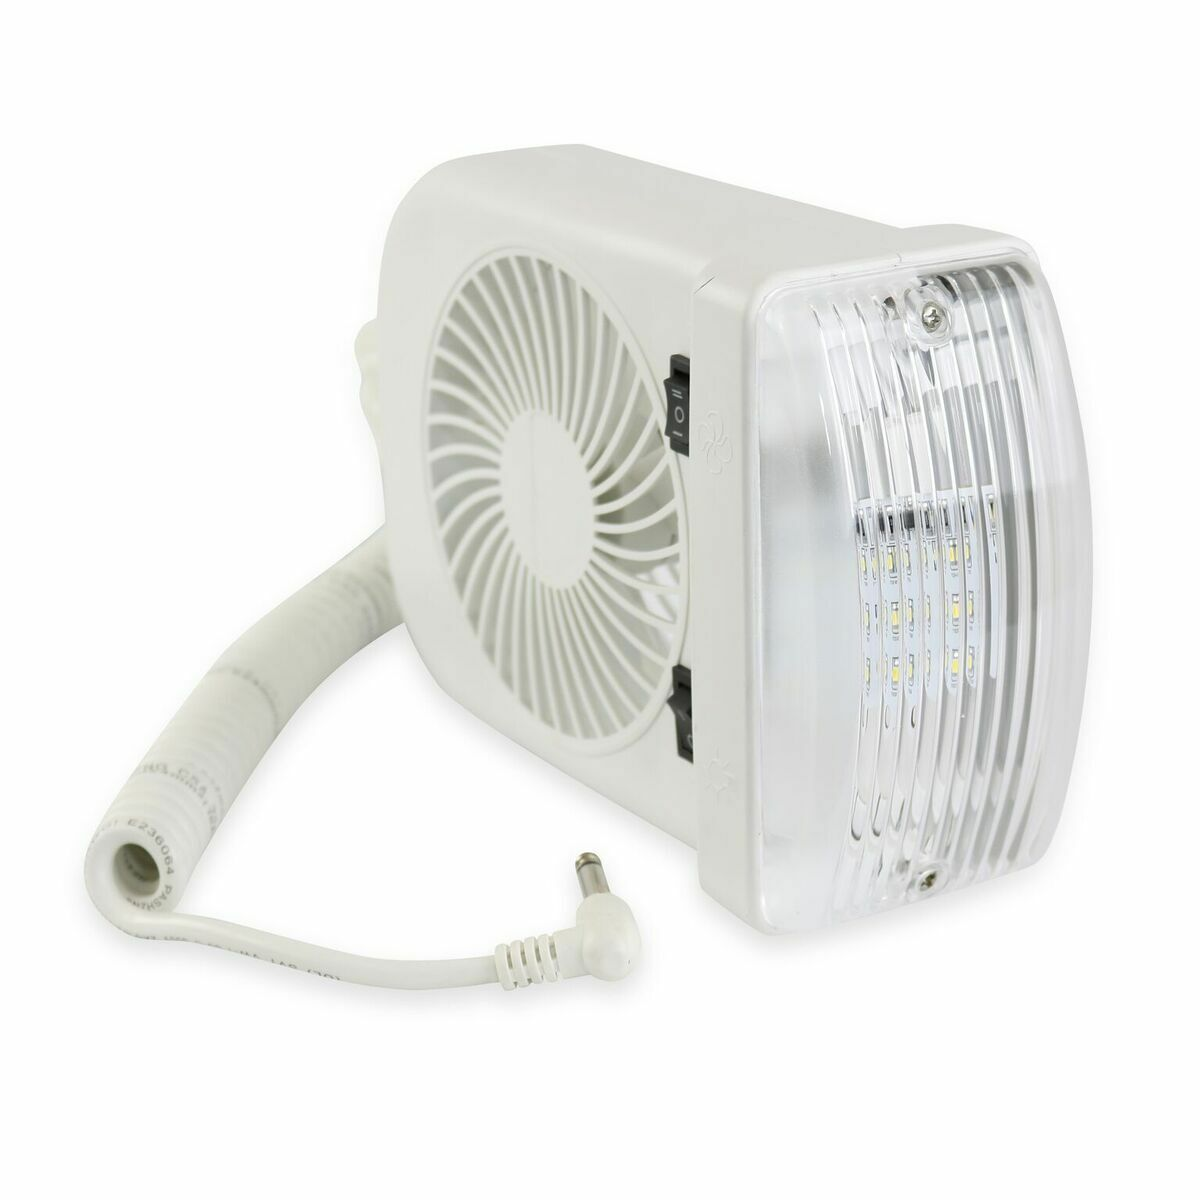 Leisure LED RV Fan light combo with 12v mounting white camper trailer